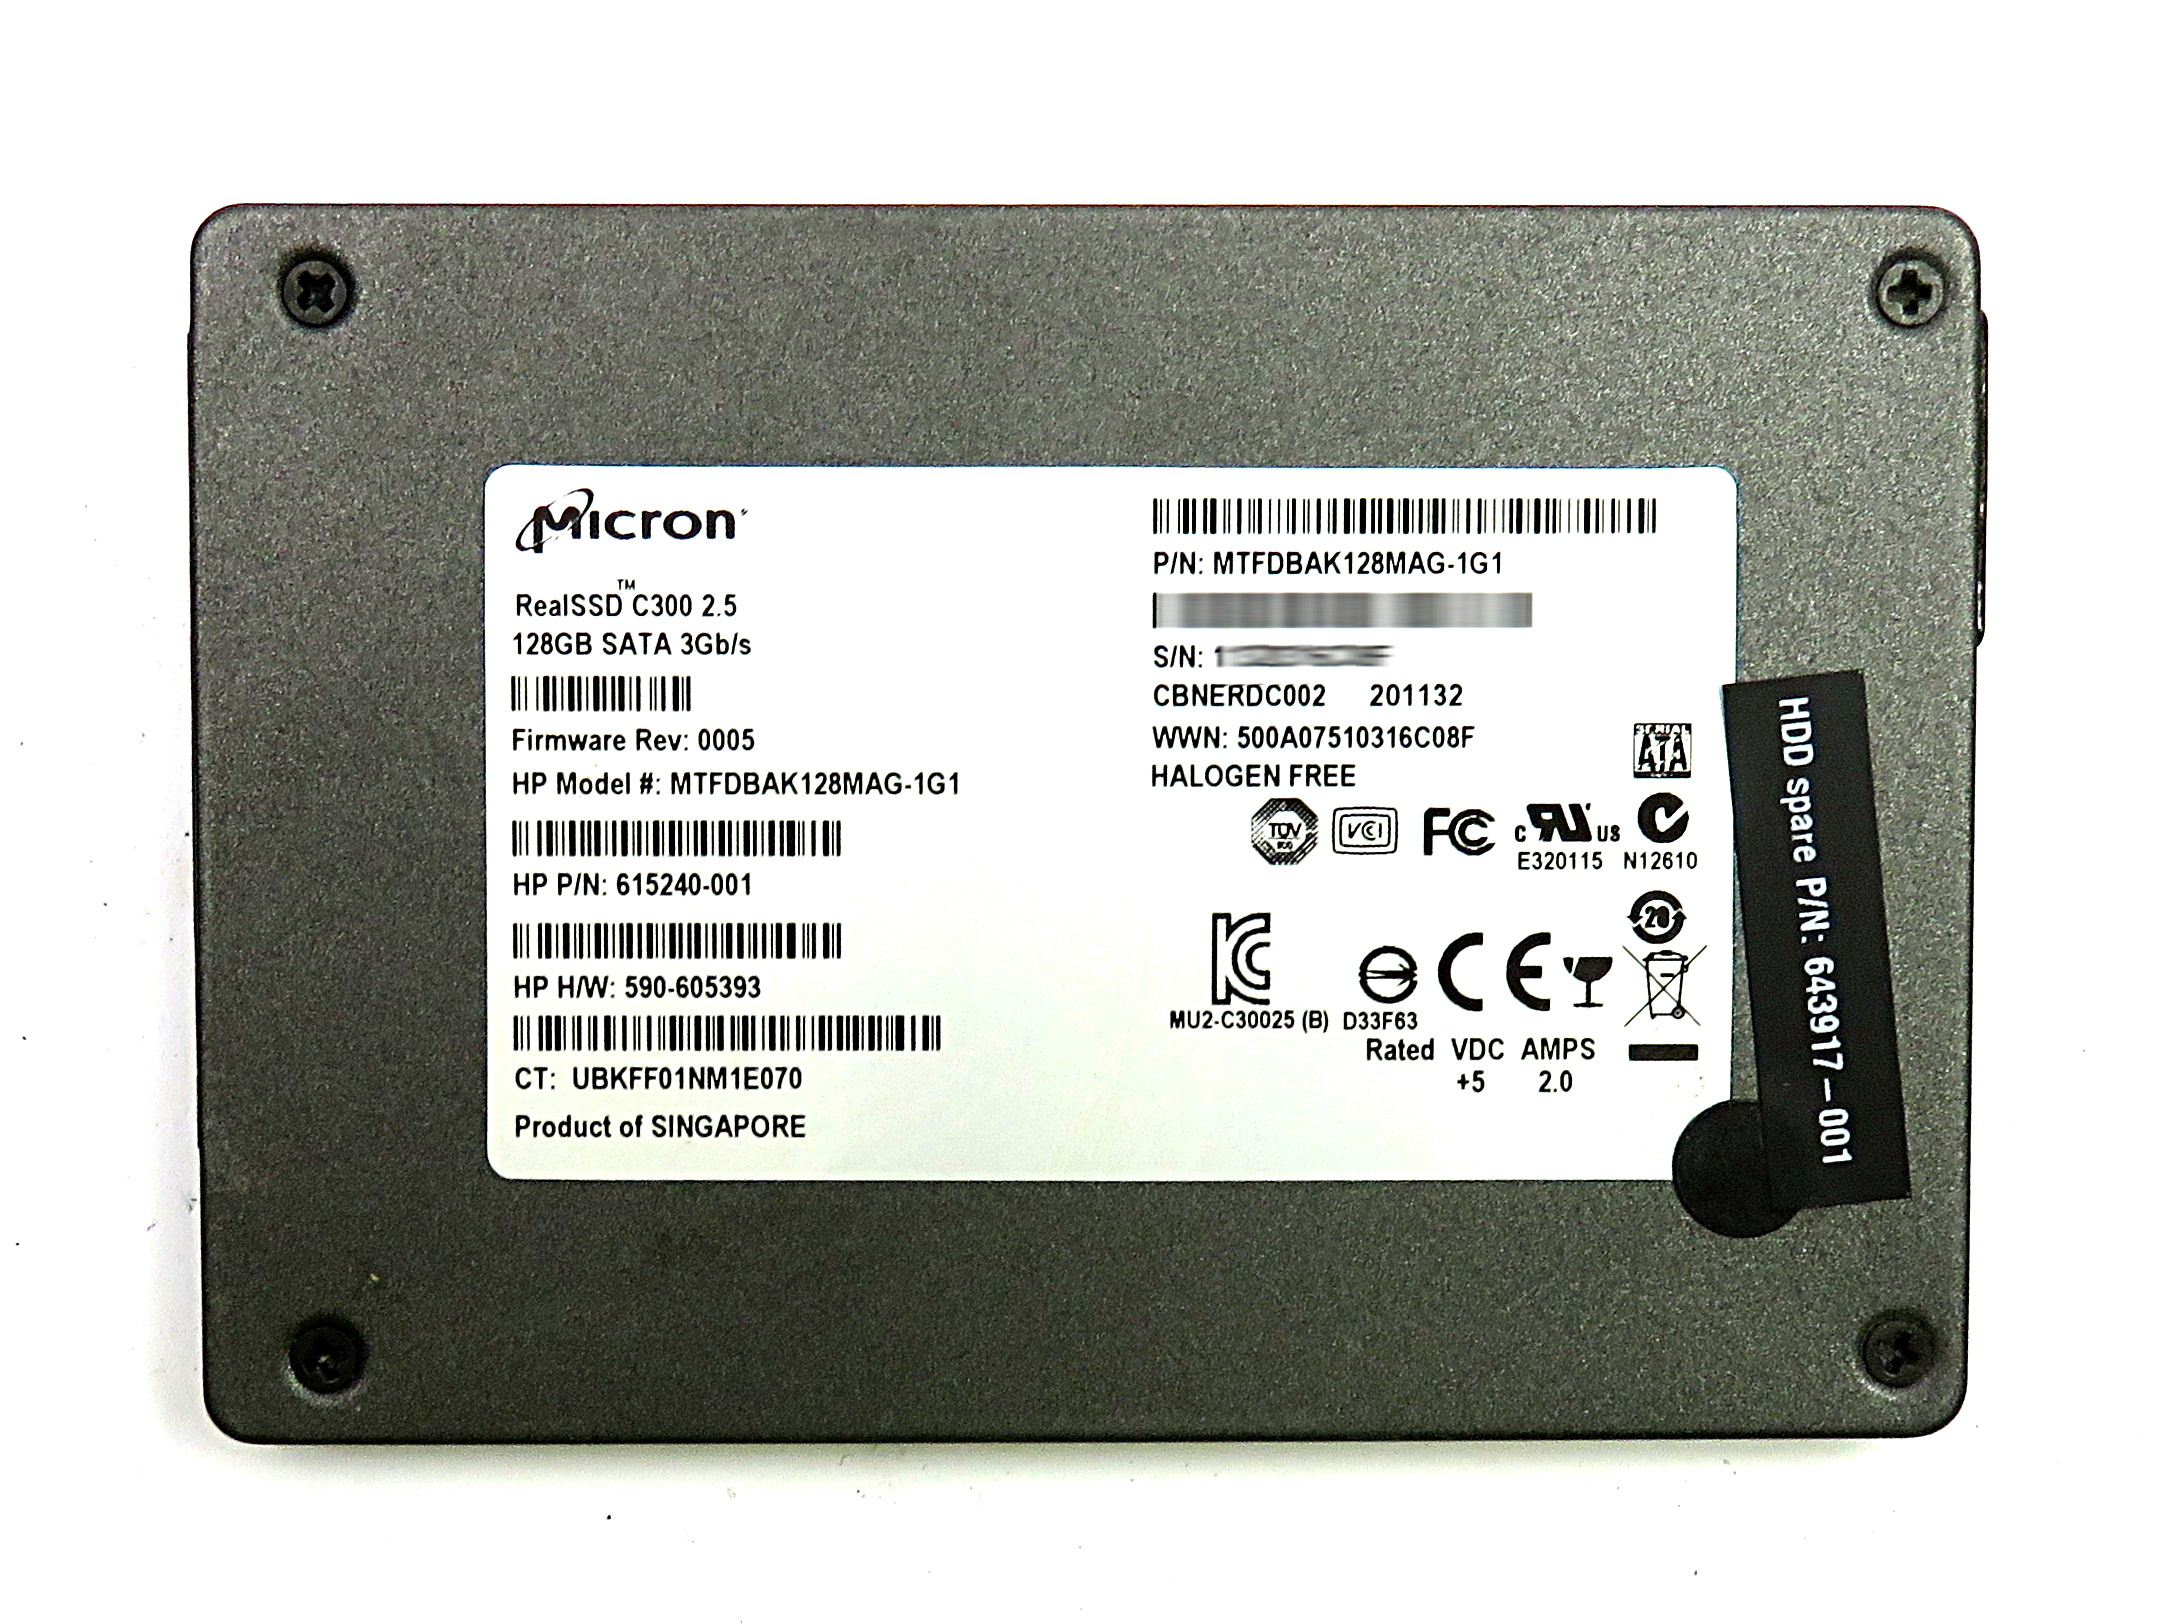 MICRON REALSSD C300 DRIVERS FOR WINDOWS XP